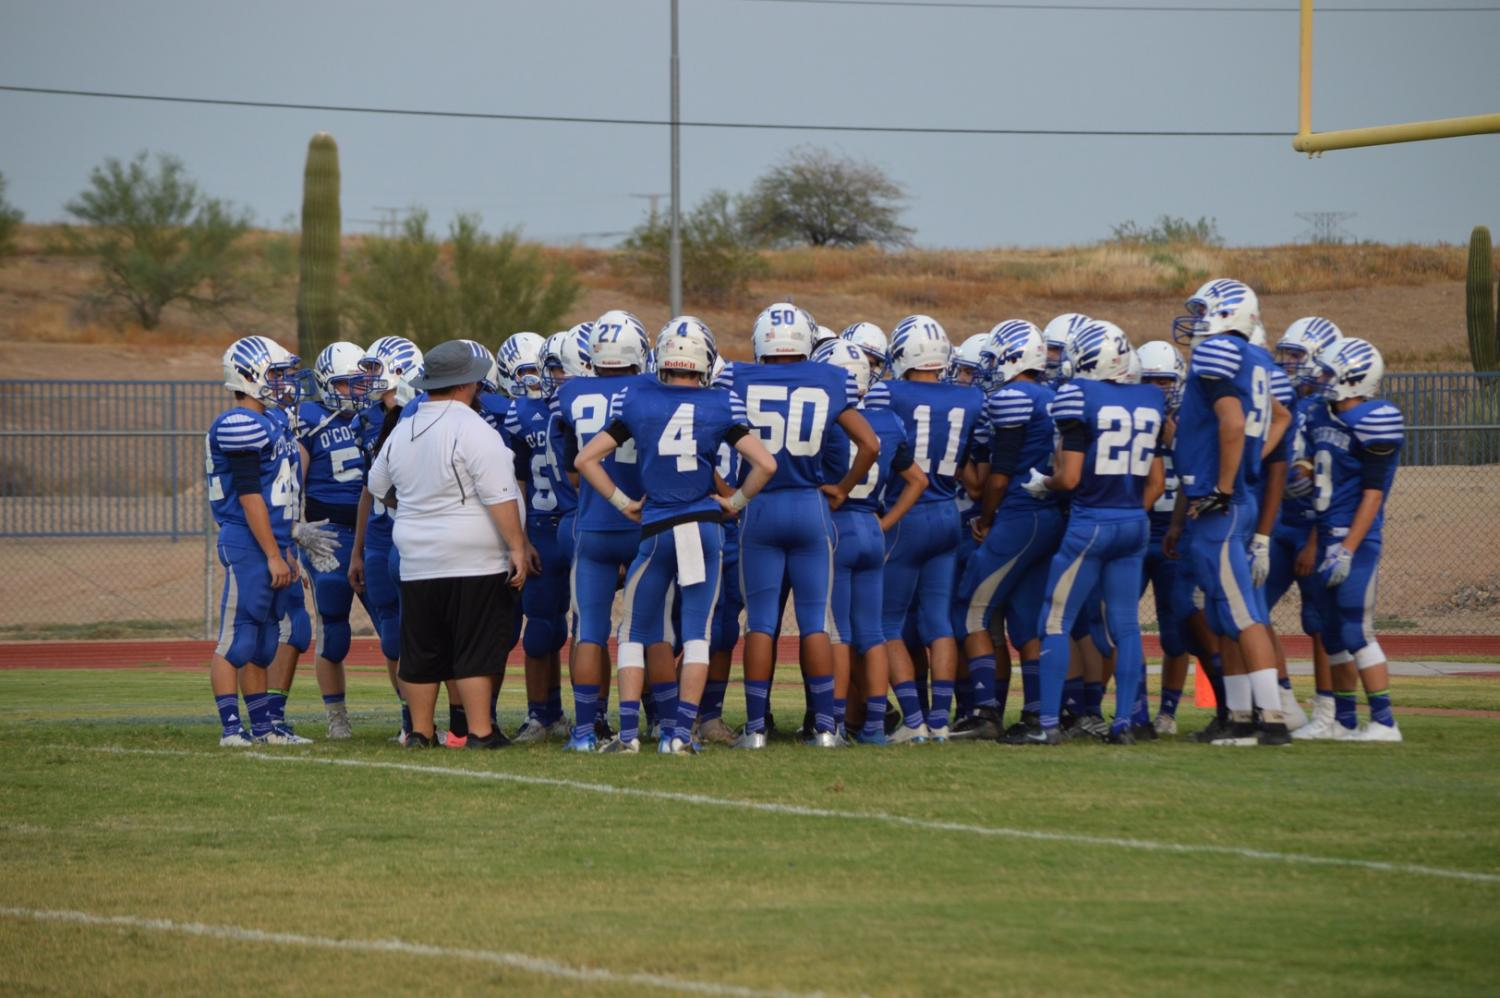 The JV football team huddle together to discuss their new game plan.